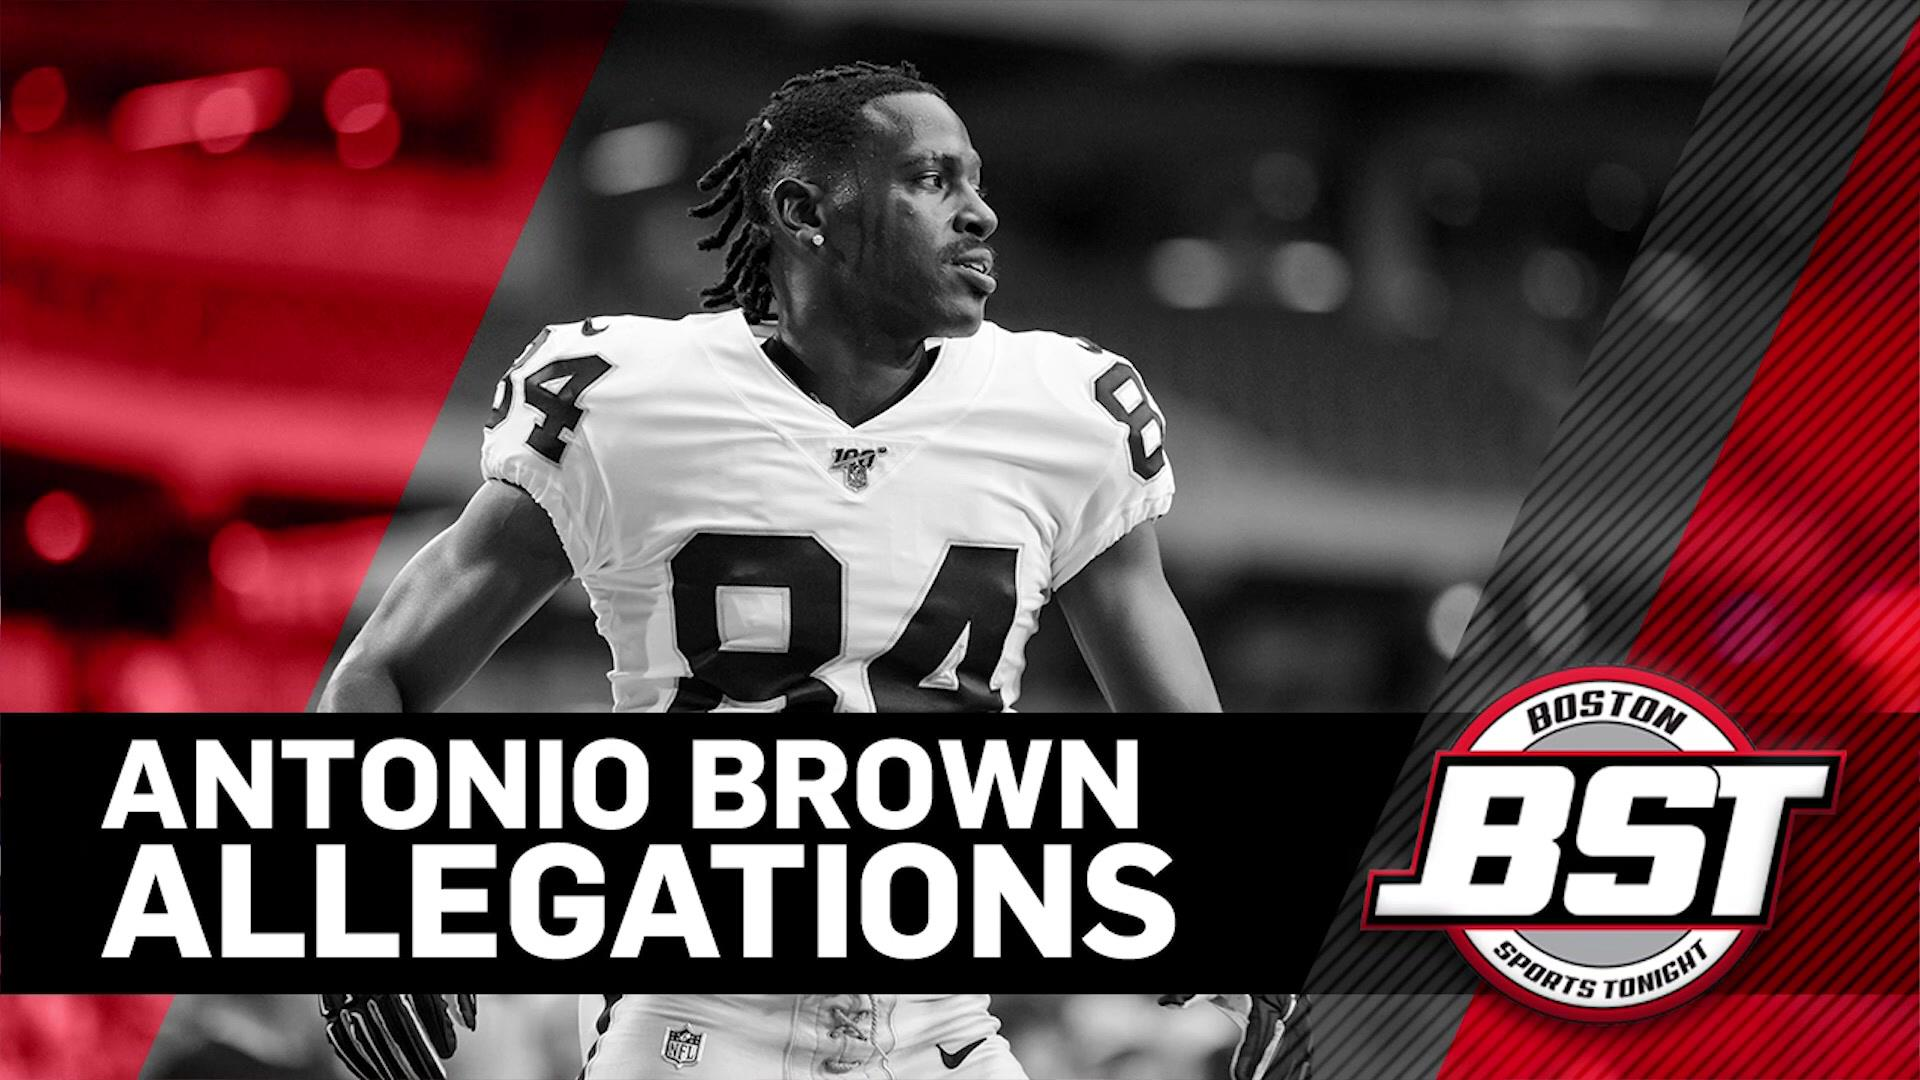 Tom Curran reacts to allegations surrounding Antonio Brown